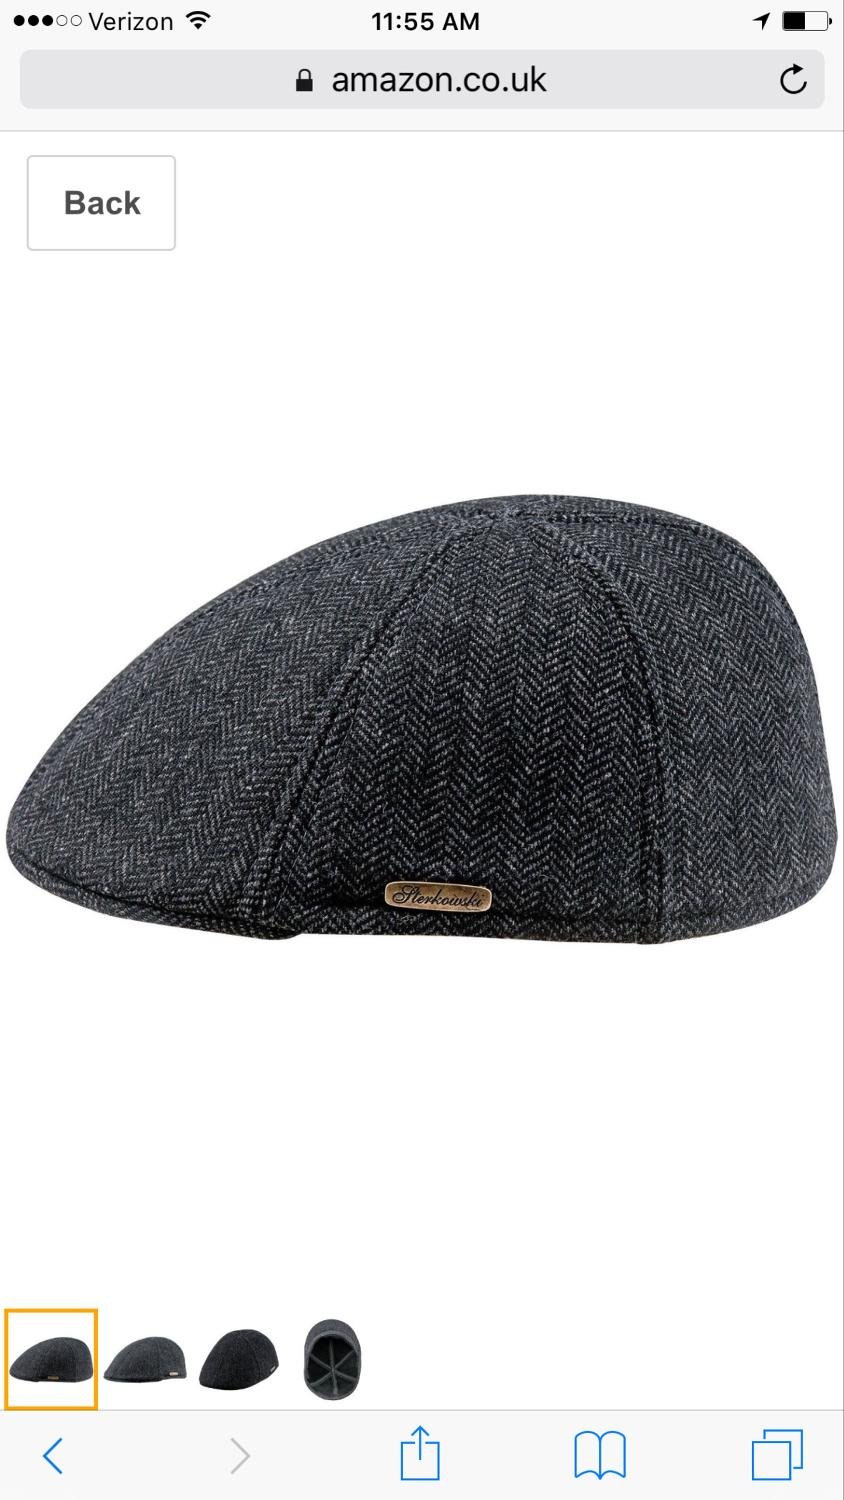 e4fbb43a4c298 Best Nwt Sterkowski Warm Wool Blend Petersham Duckbill 6 Panel Flat Cap.  Size Small Adult Or 8-10yr Old.  10 Box J for sale in Hendersonville